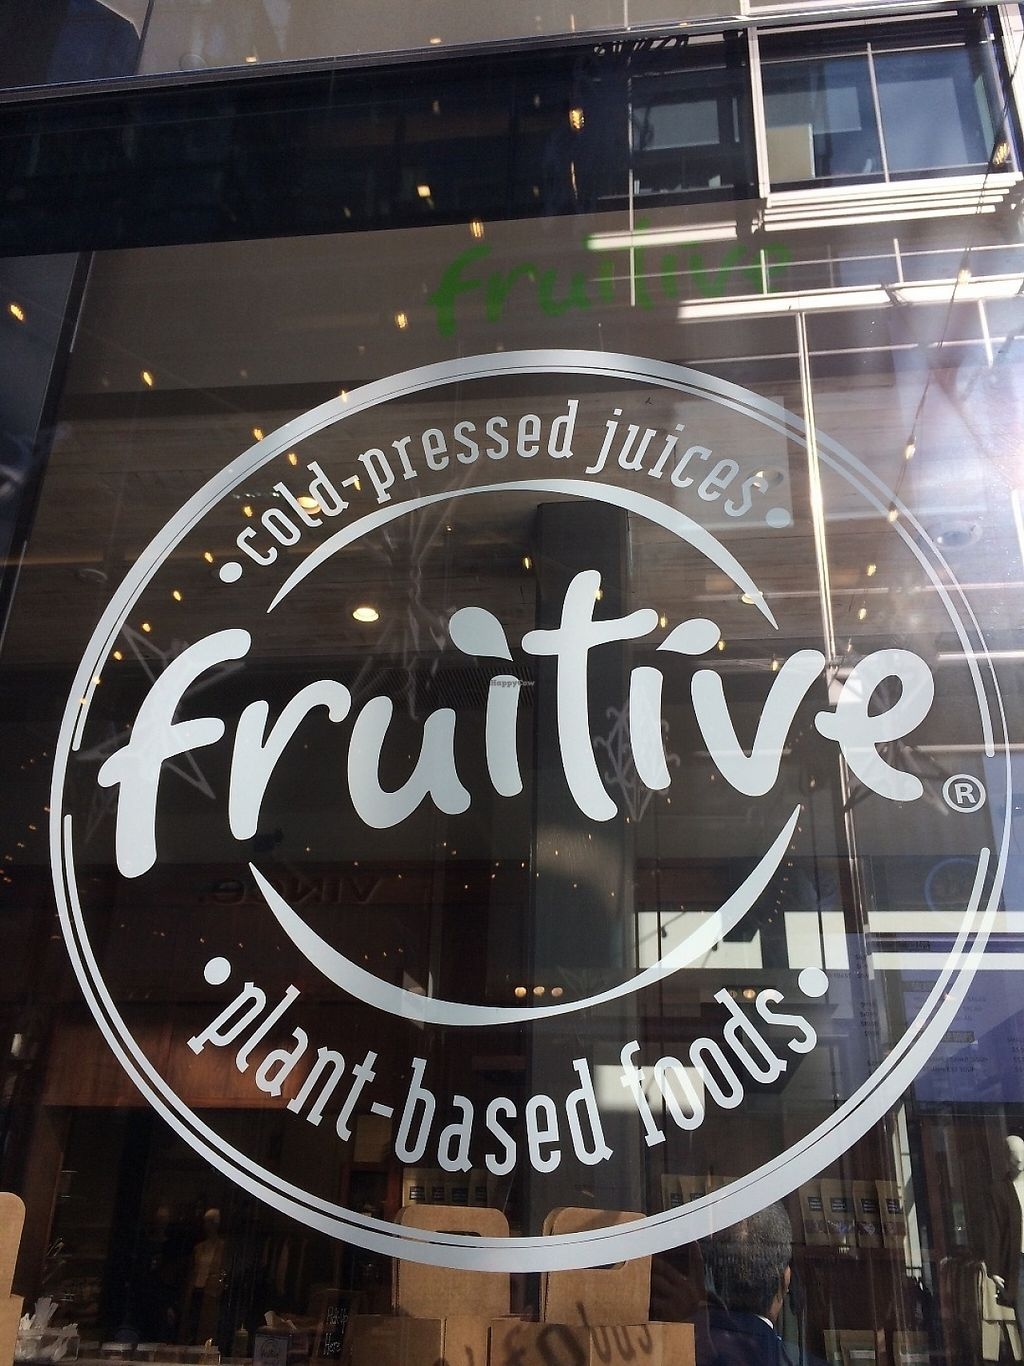 """Photo of Fruitive  by <a href=""""/members/profile/MyGreenTongue"""">MyGreenTongue</a> <br/>Outside furtive <br/> May 24, 2017  - <a href='/contact/abuse/image/69107/262184'>Report</a>"""